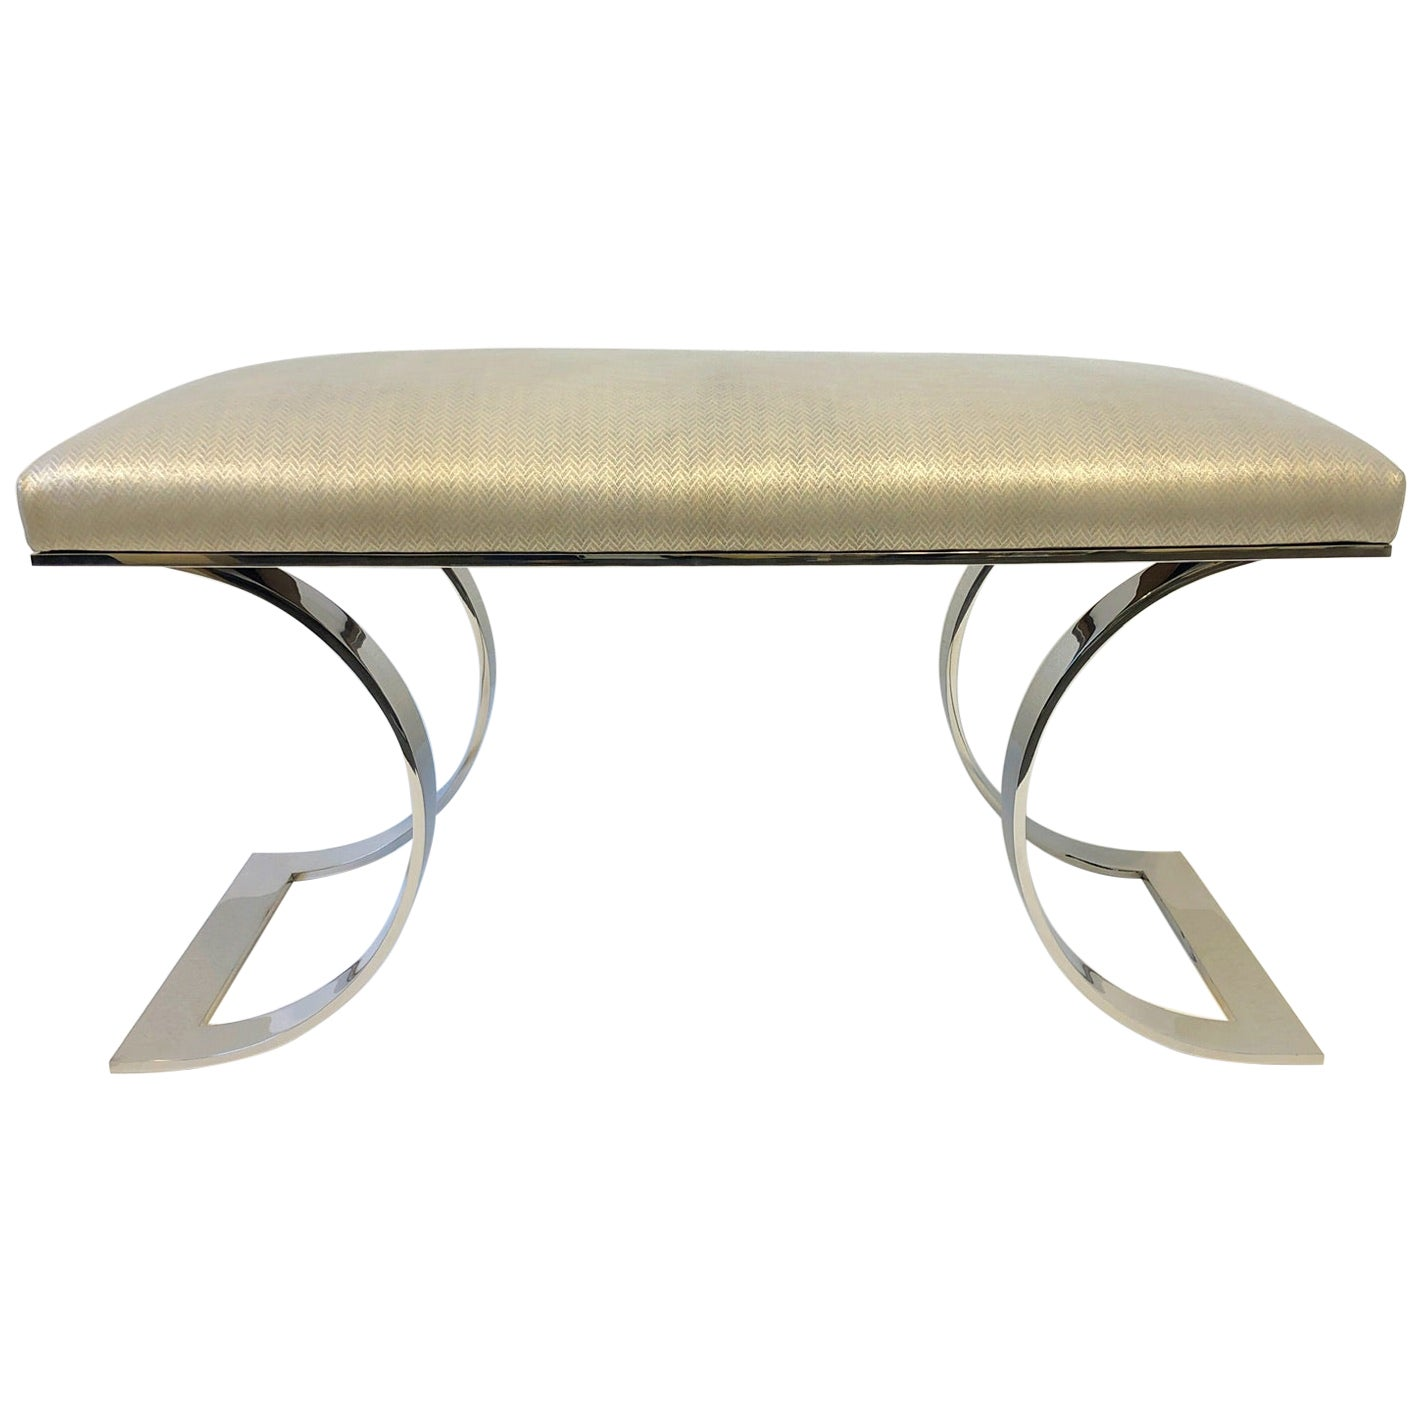 """Polish Stainless Steel and Leather """"JMF Bench"""" by Karl Springer"""